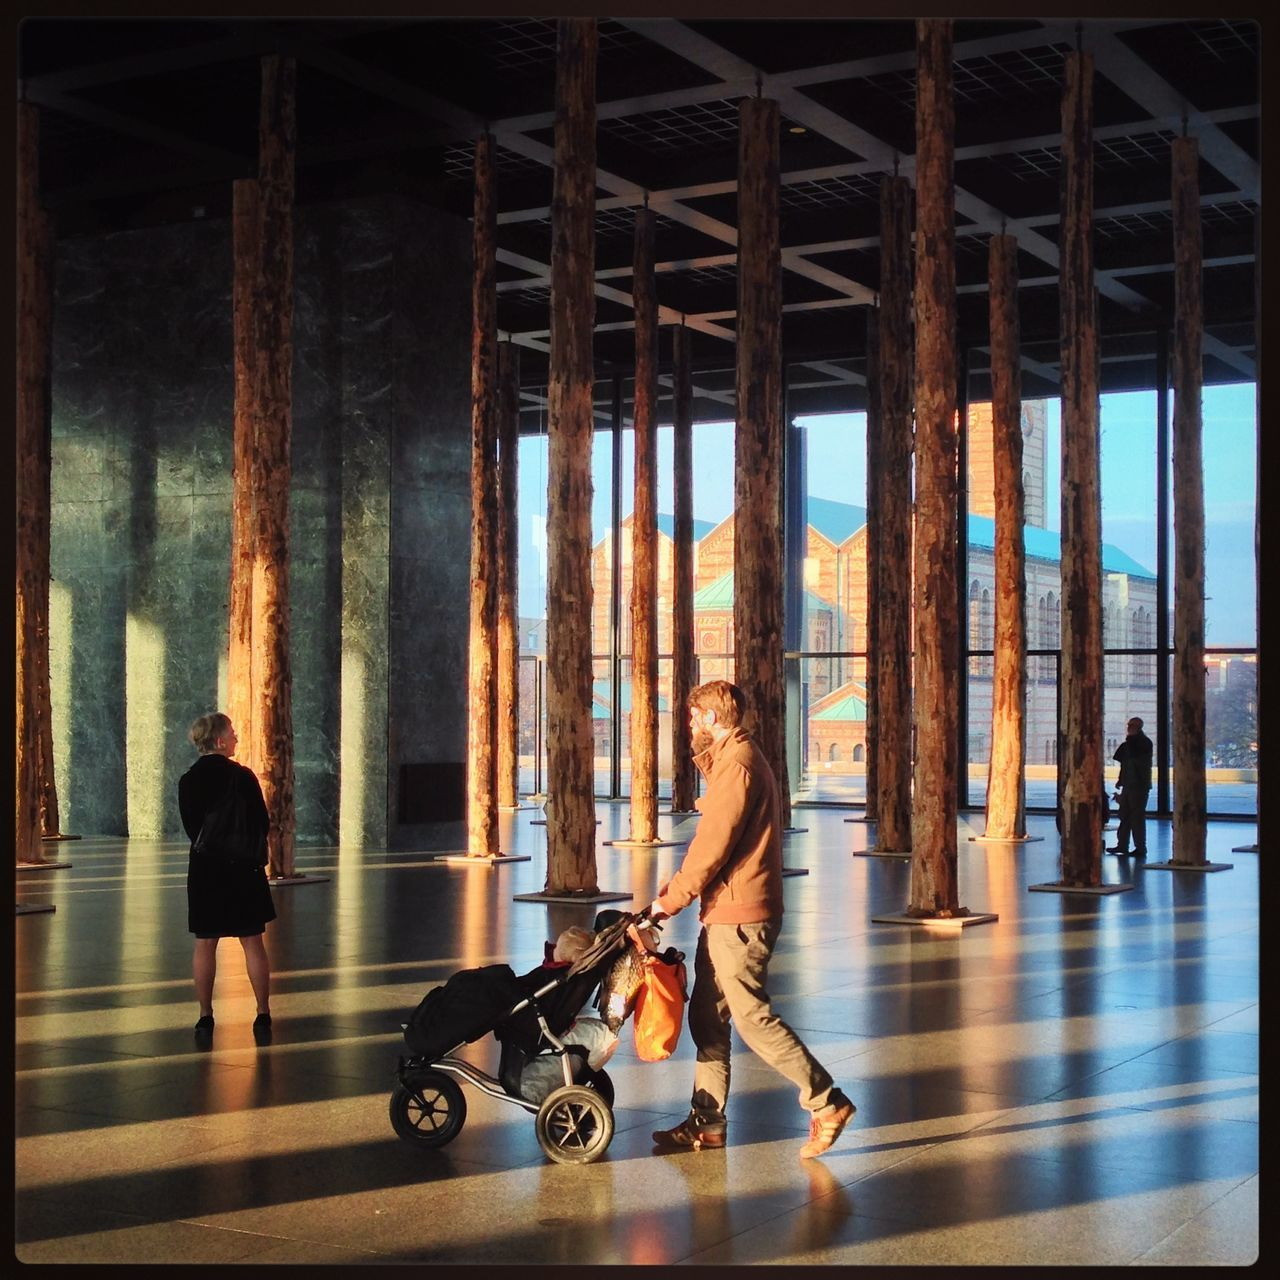 Adult Adults Only Architecture Art Day Full Length Gallery Indoors  Men Nationalgallery Neue Nationalgalerie People Real People Sunlight And Shadow Togetherness Two People Wellbeing Women Young Adult